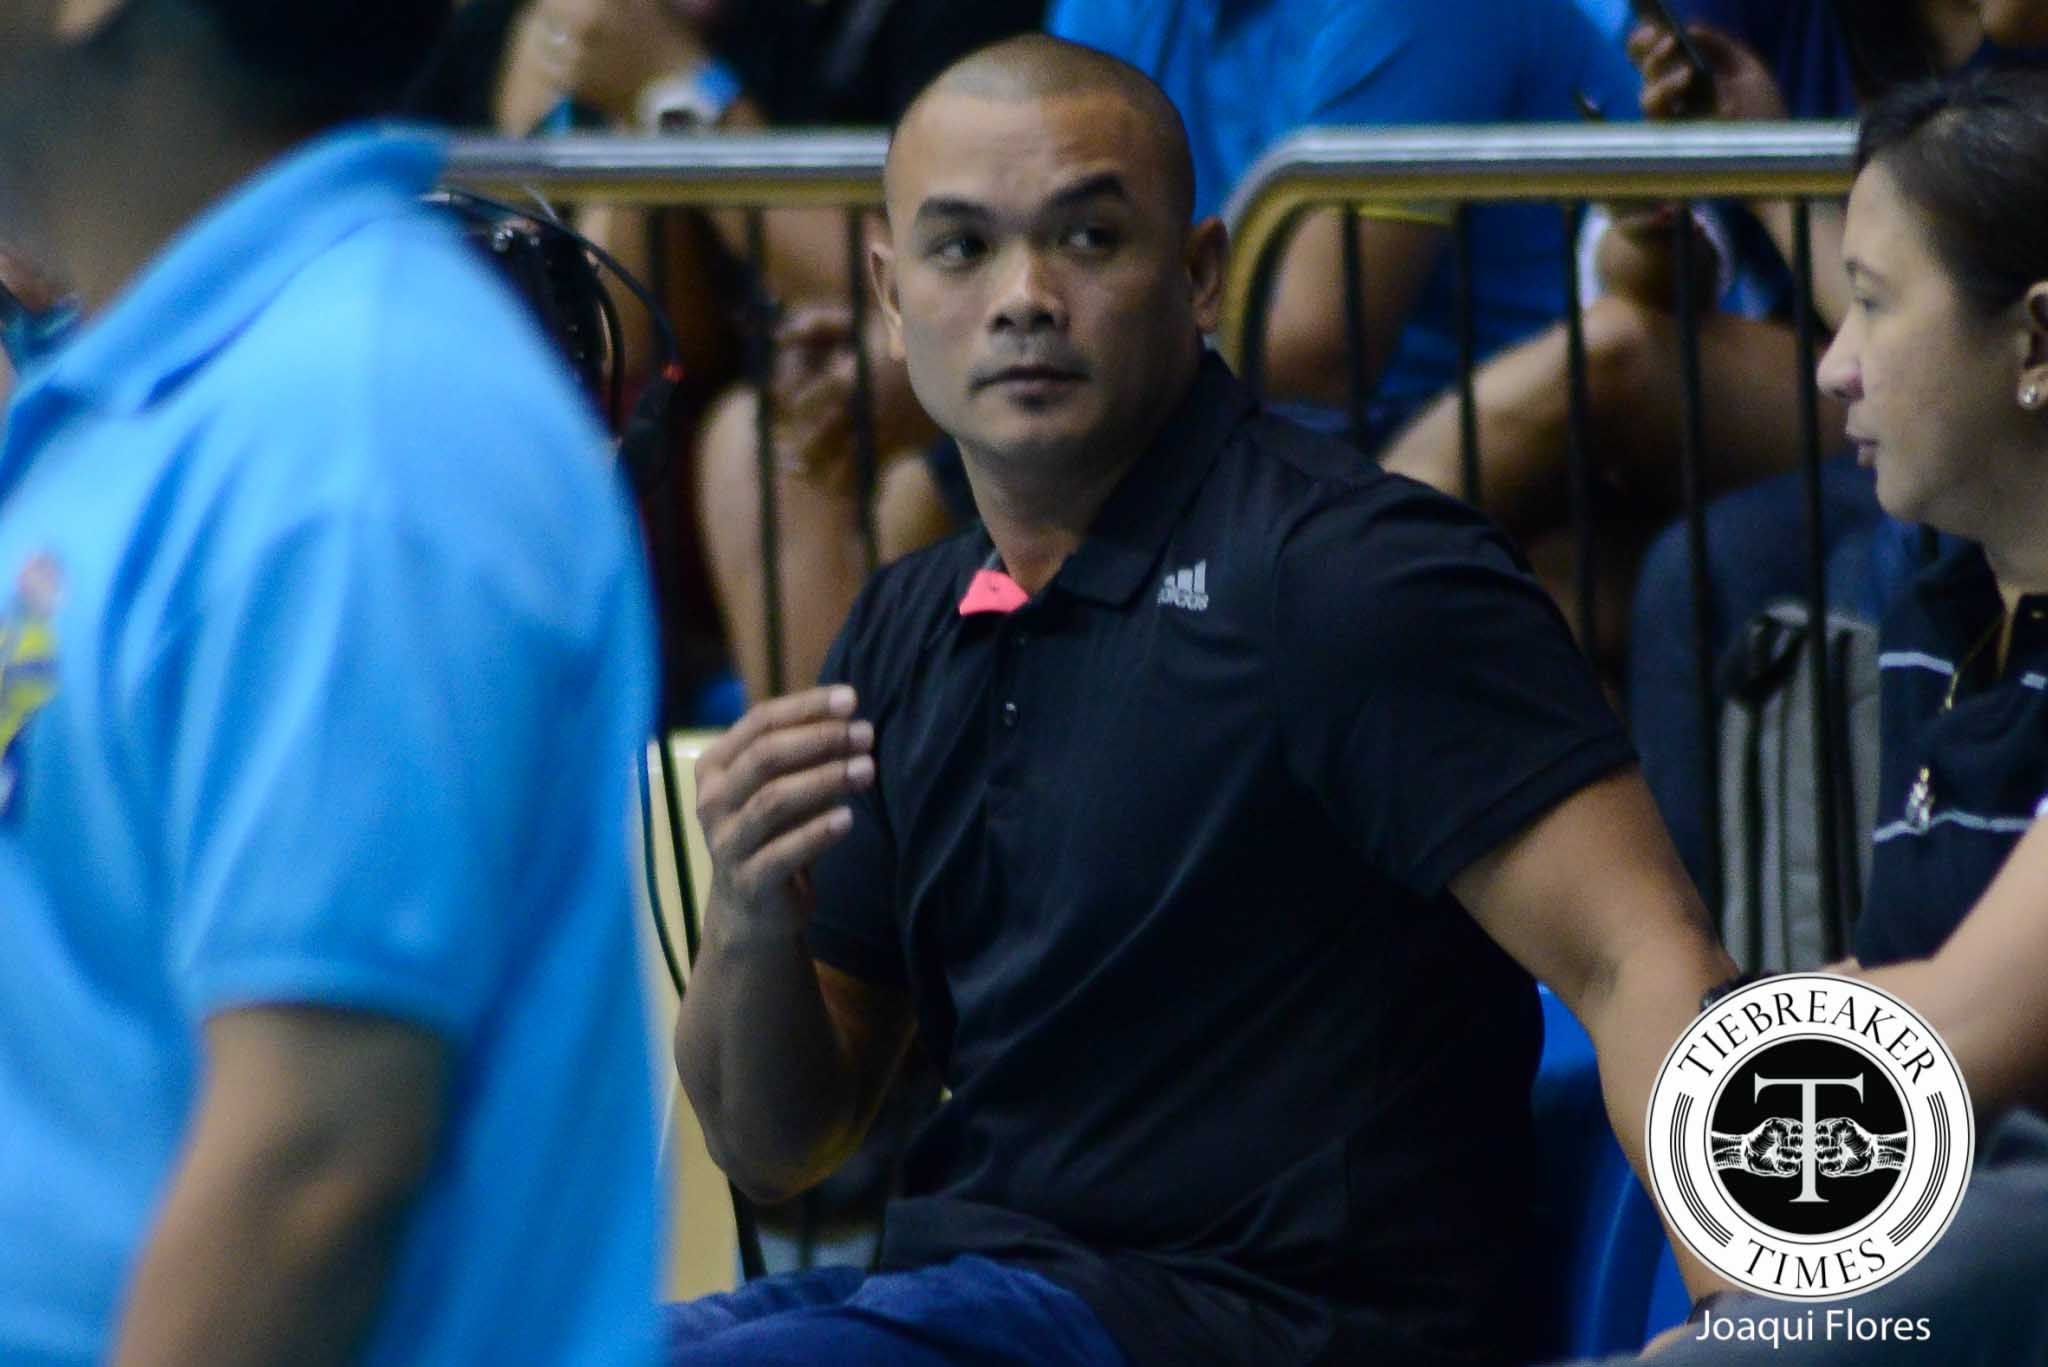 Tiebreaker Times Bad calls and searching for leaders: Kungfu on UST's costly loss News UAAP UST Volleyball  UST Women's Volleyball UAAP Season 78 Women's Volleyball UAAP Season 78 Mela Tunay Kungfu Reyes EJ Laure